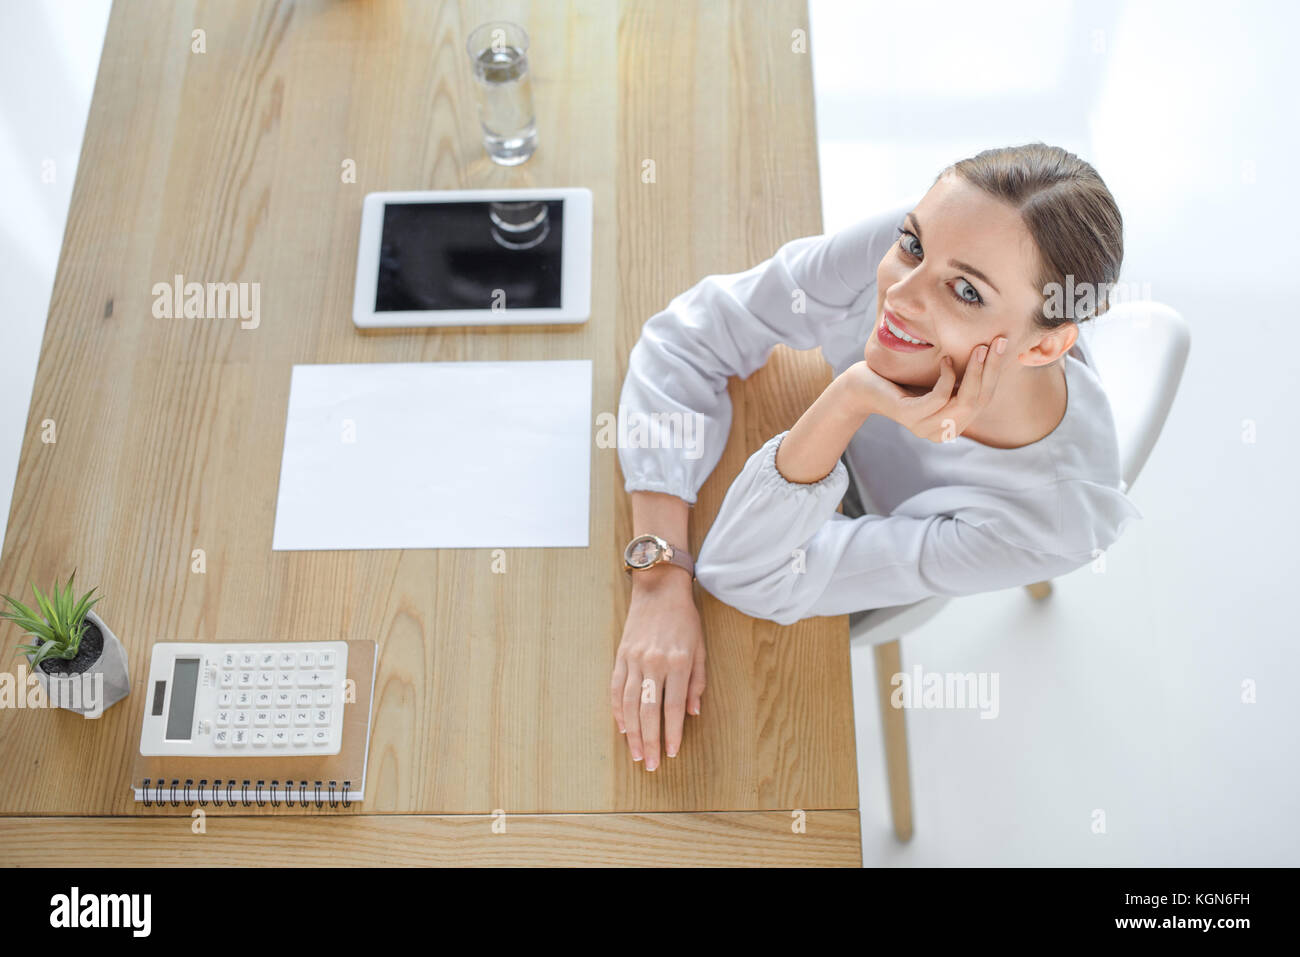 Smiling businesswoman at desk in office Stock Photo